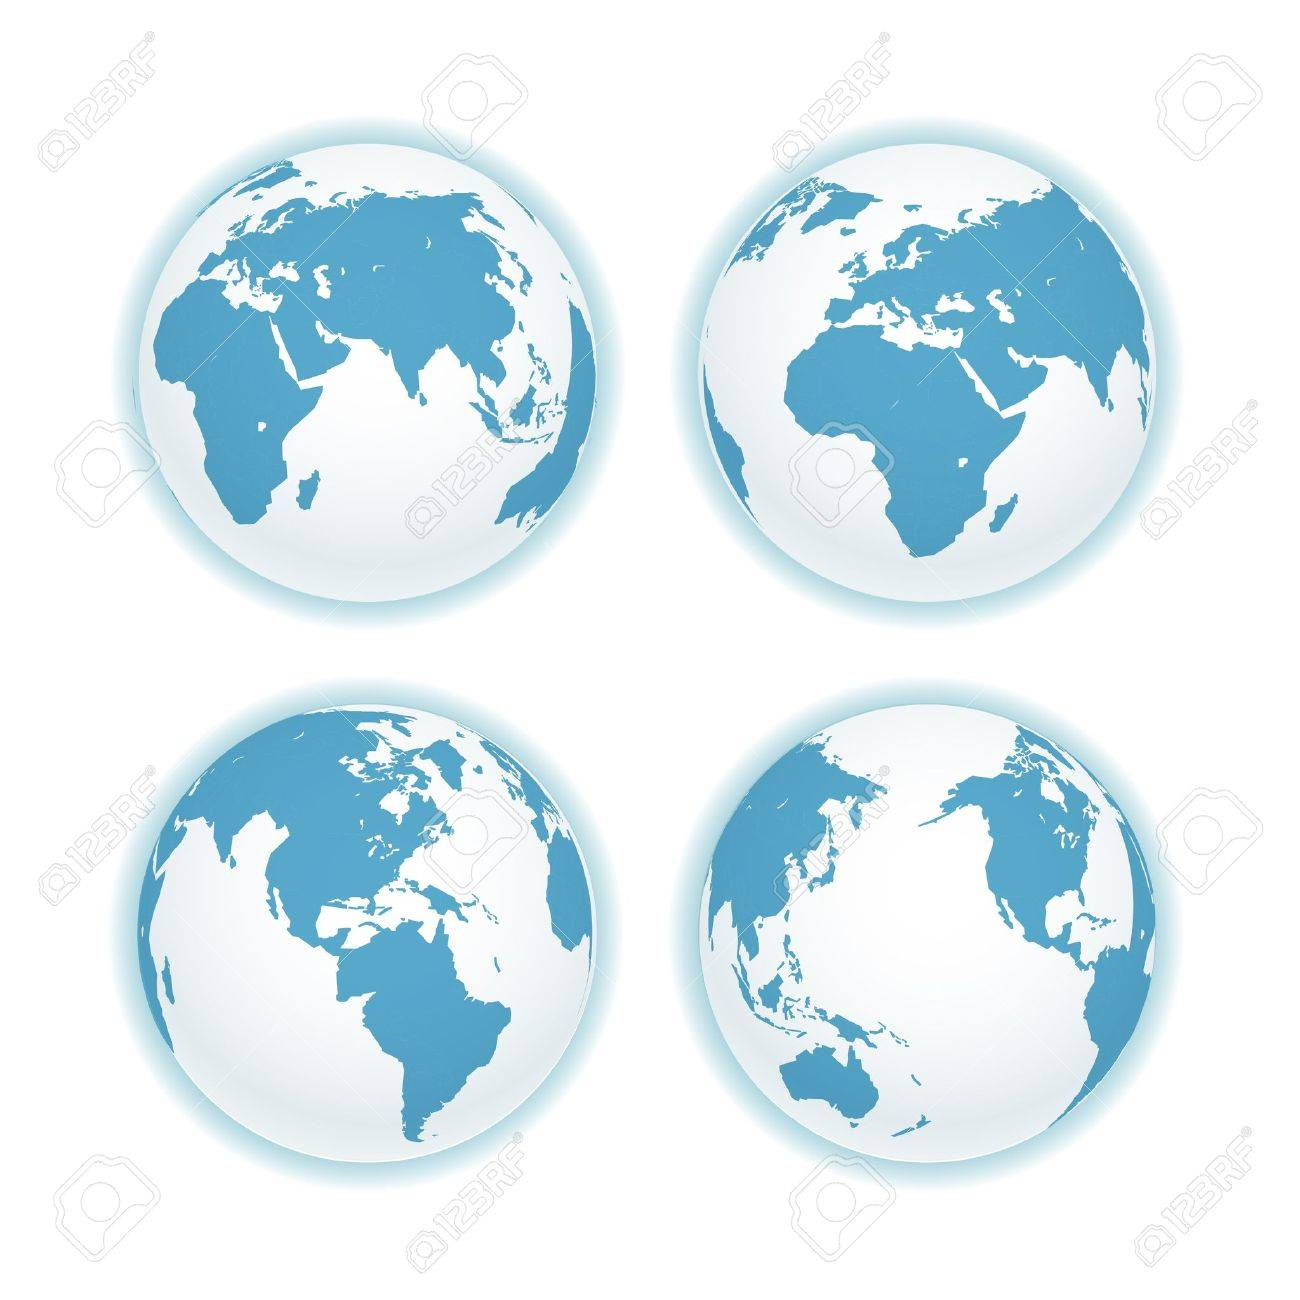 Earth map scheme isolated on white. Stock Vector - 16053095